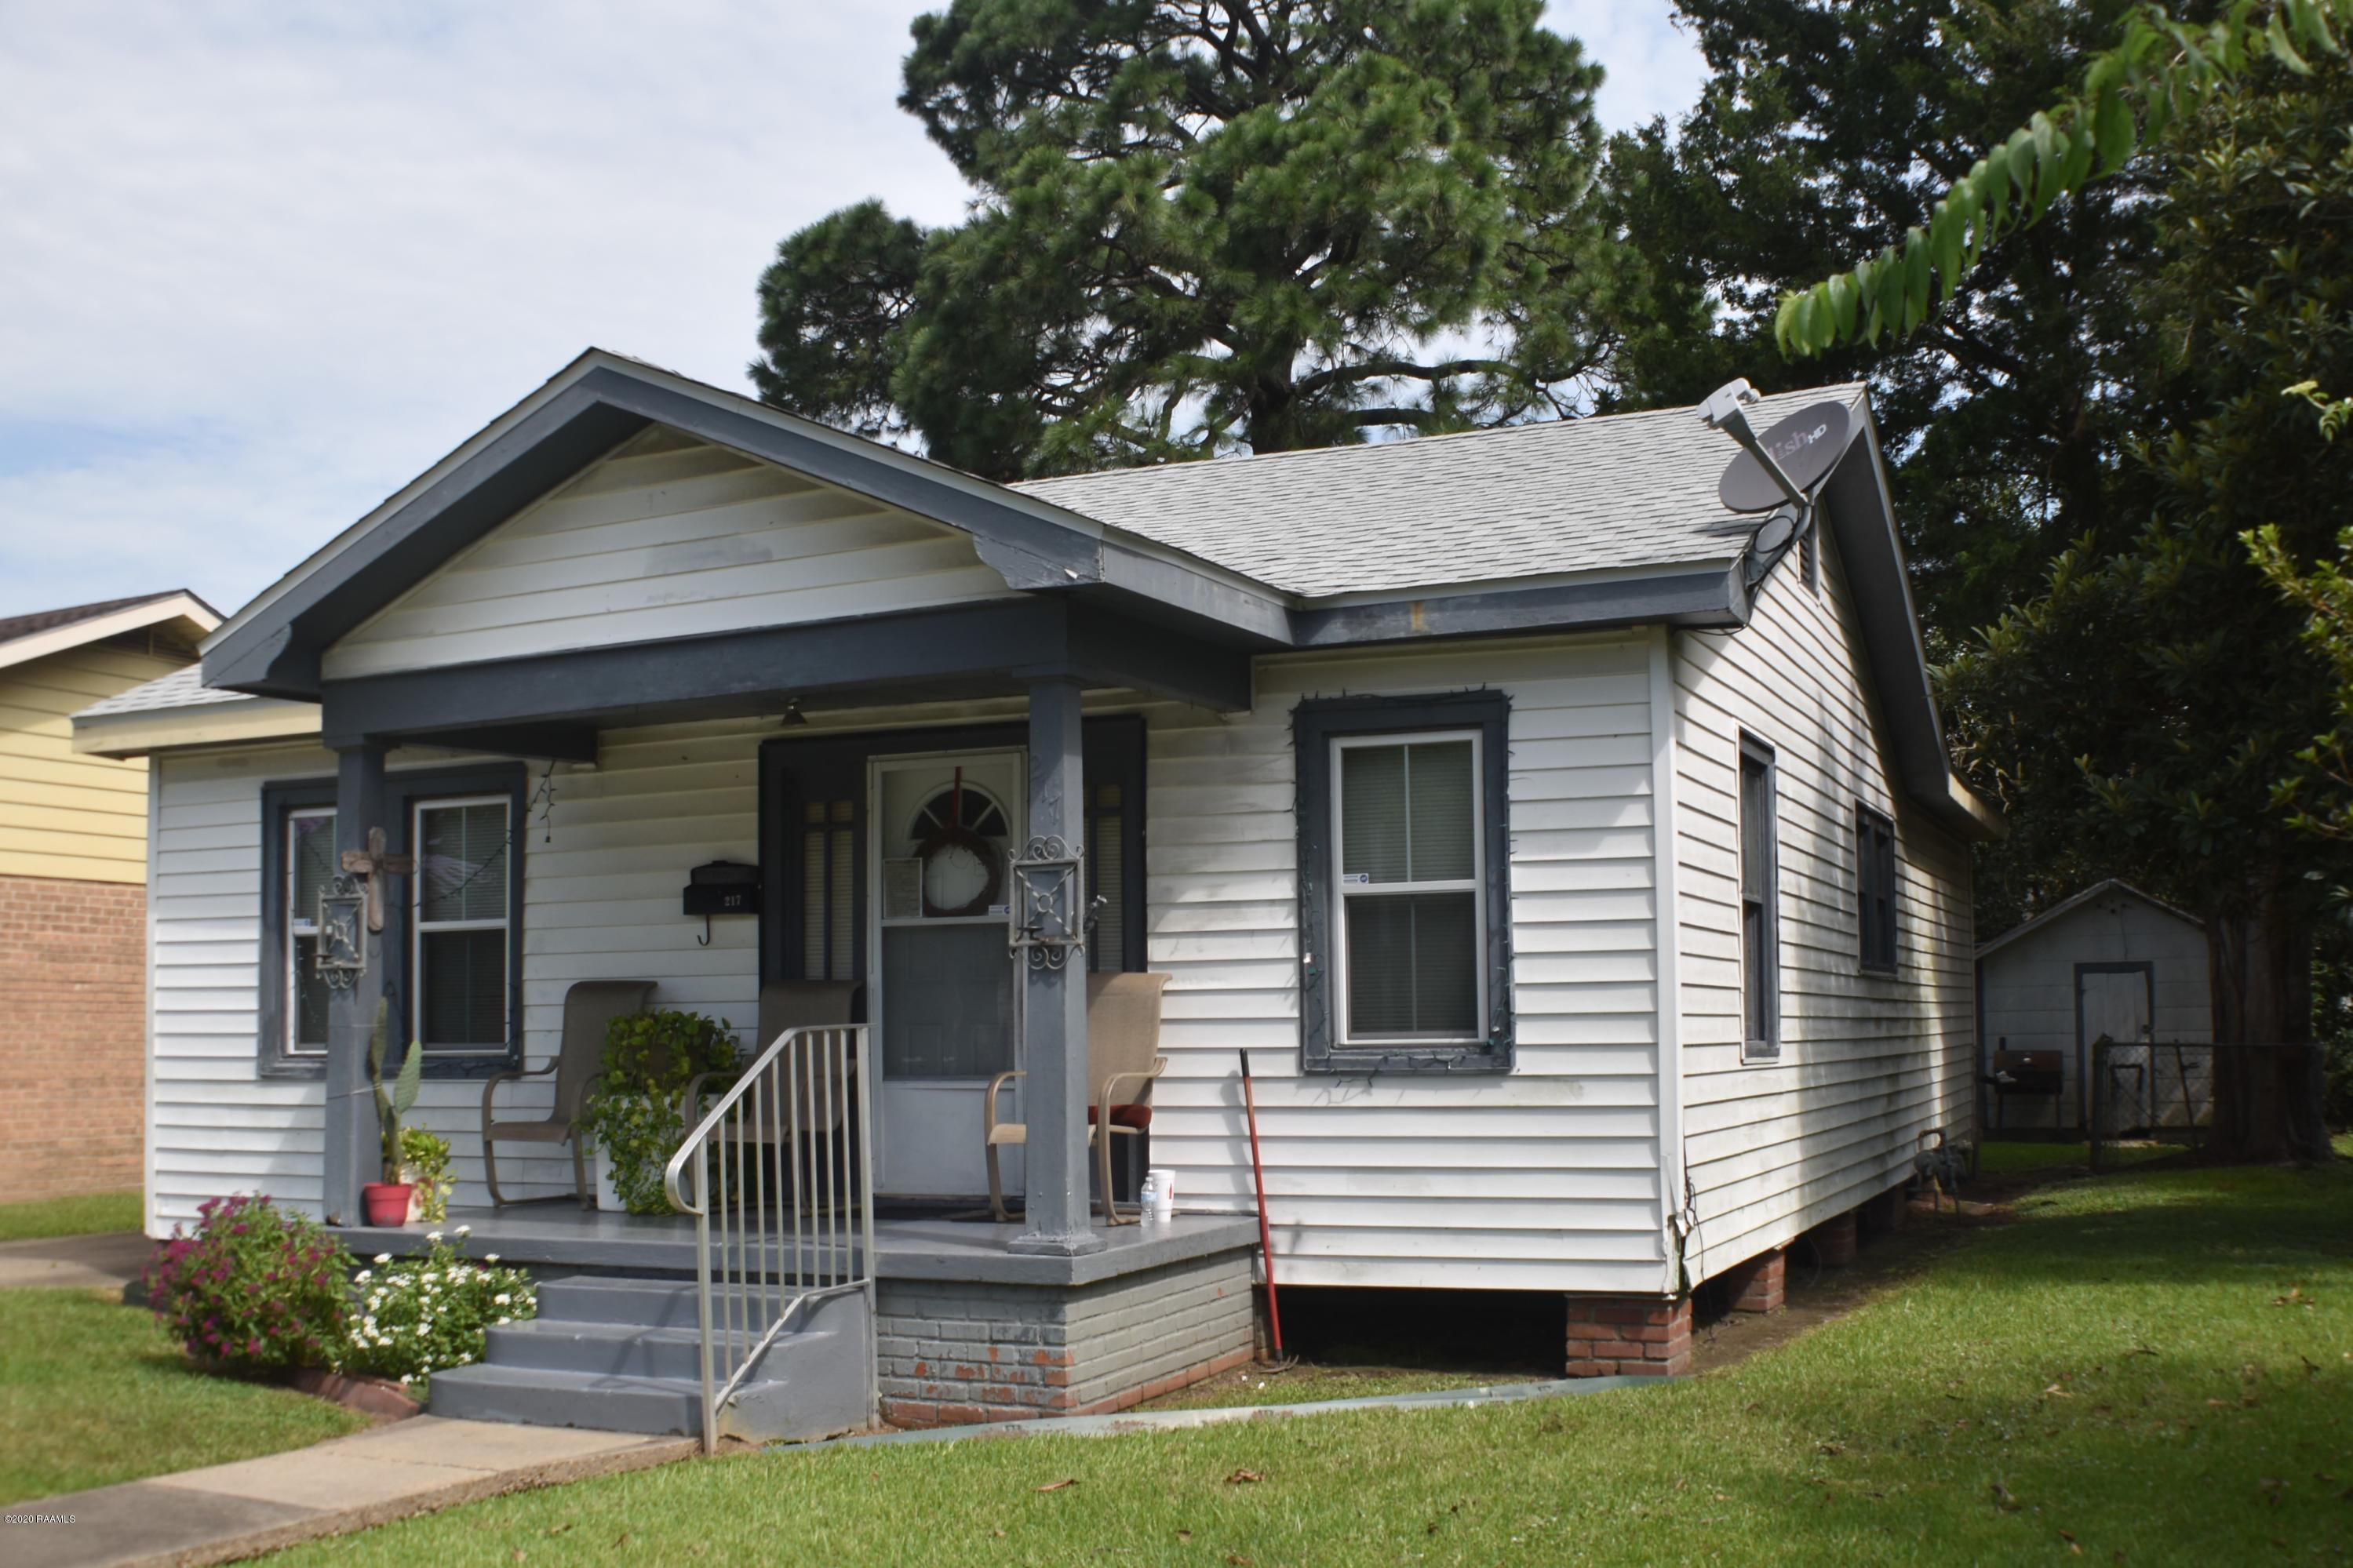 217 Goldman Street, Lafayette, LA 70501 Photo #2